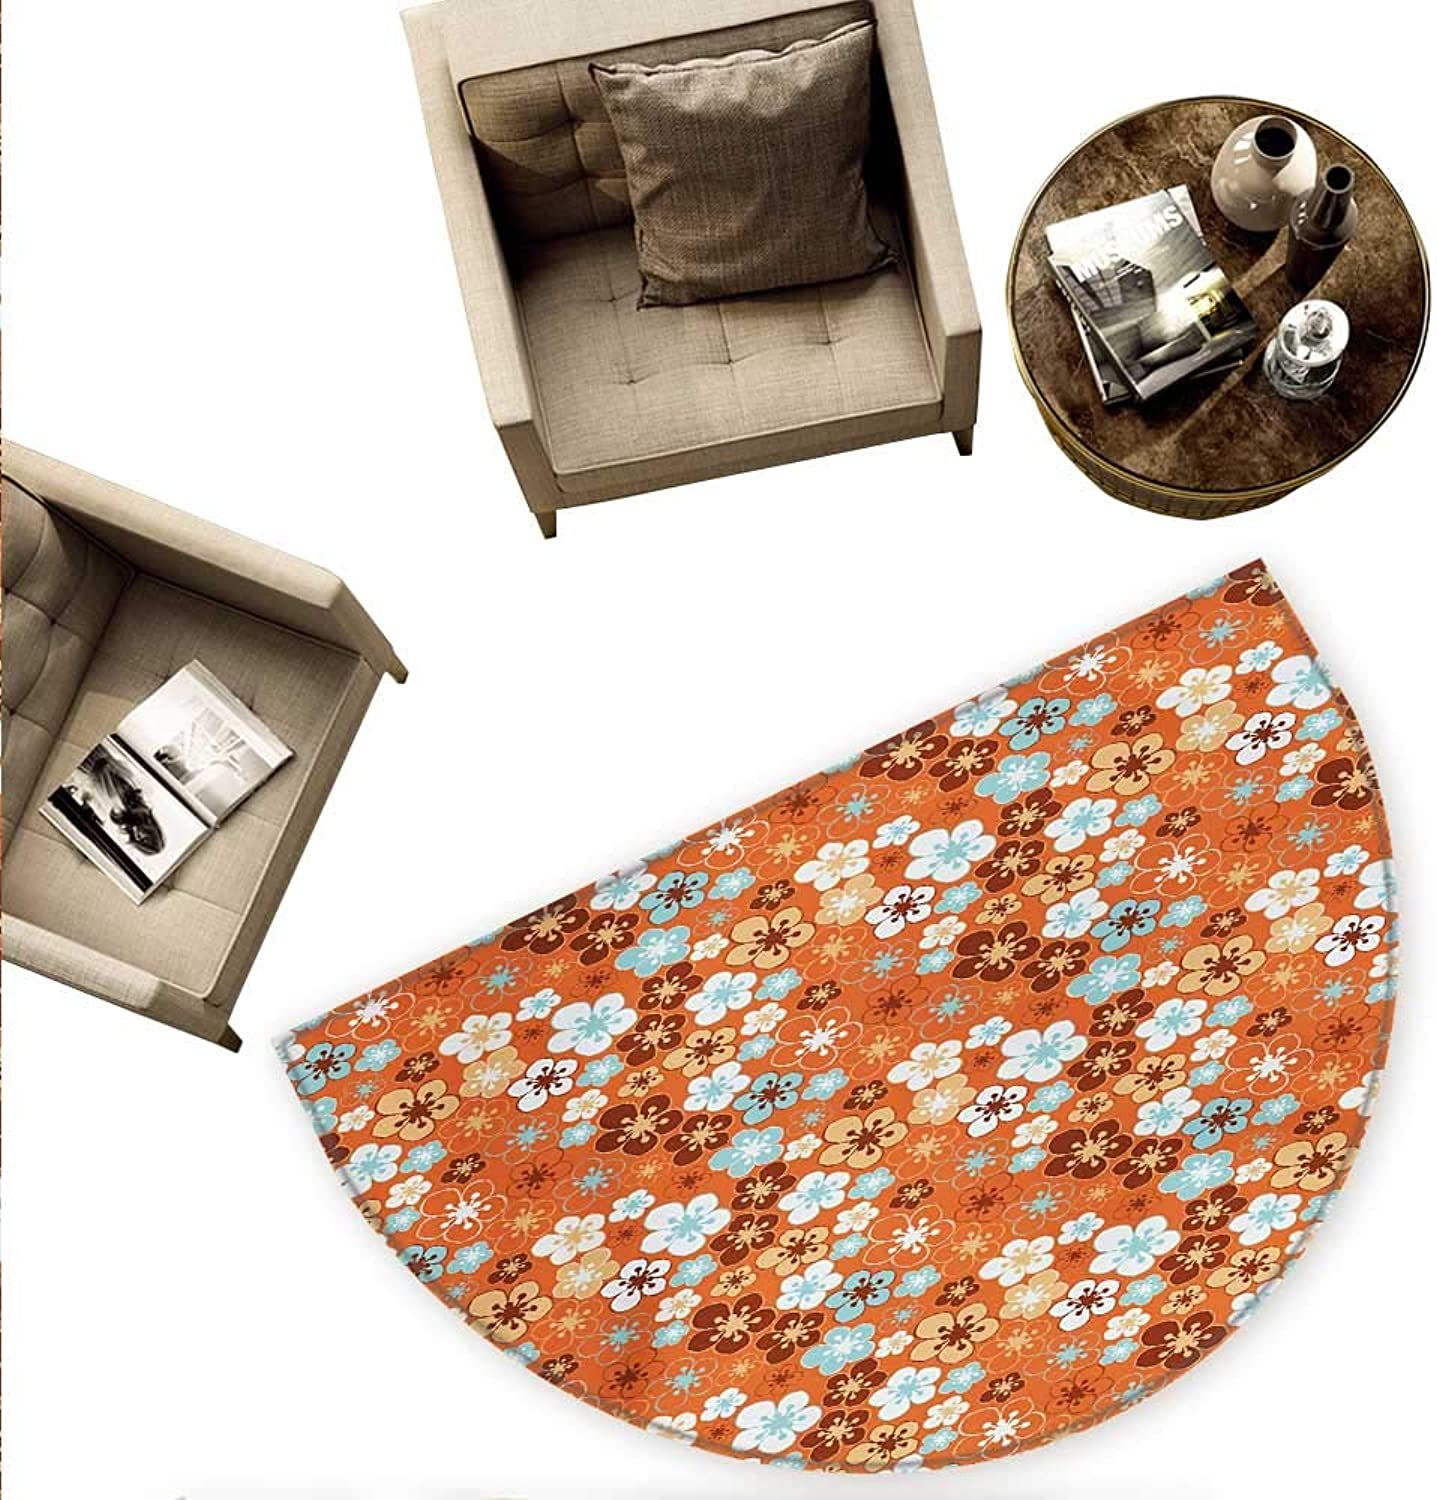 orange Semicircular Cushion Cute Old Fashioned Doodle Flora Abstract Blooming Meadow in Summer Theme Entry Door Mat H 70.8  xD 106.3  Sky bluee orange Brown